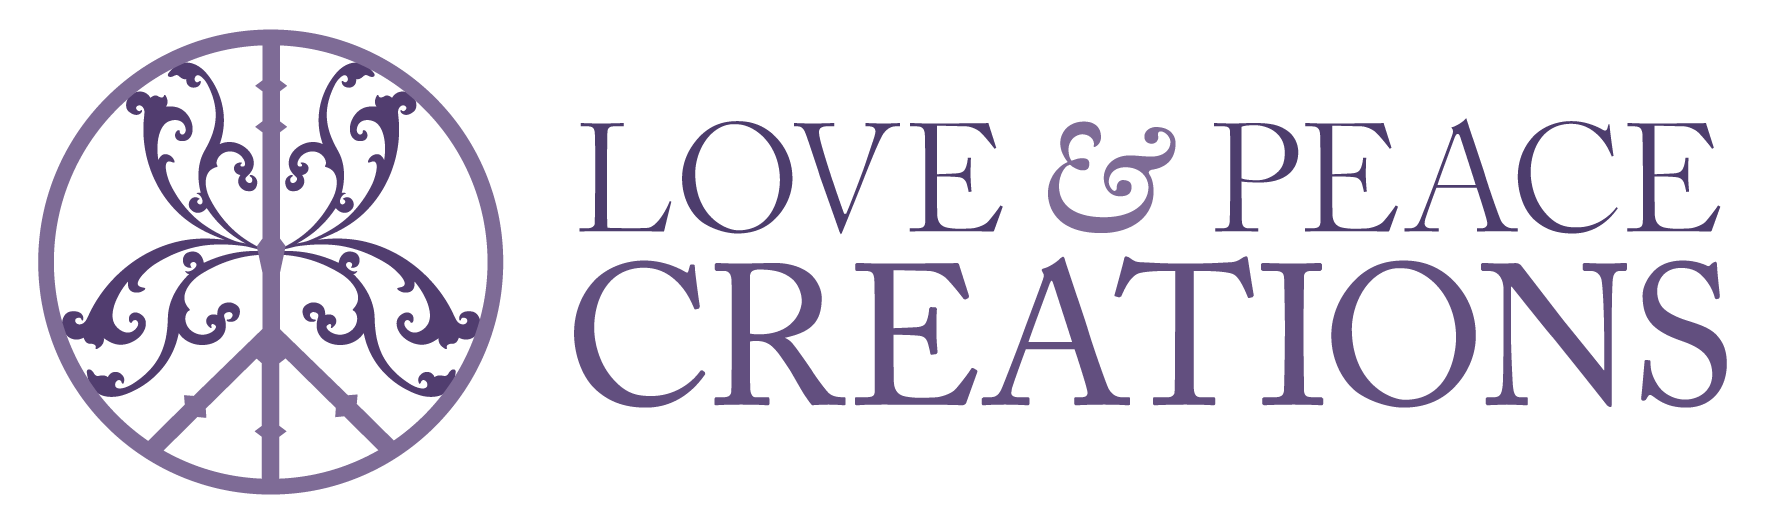 Love And Peace Creations